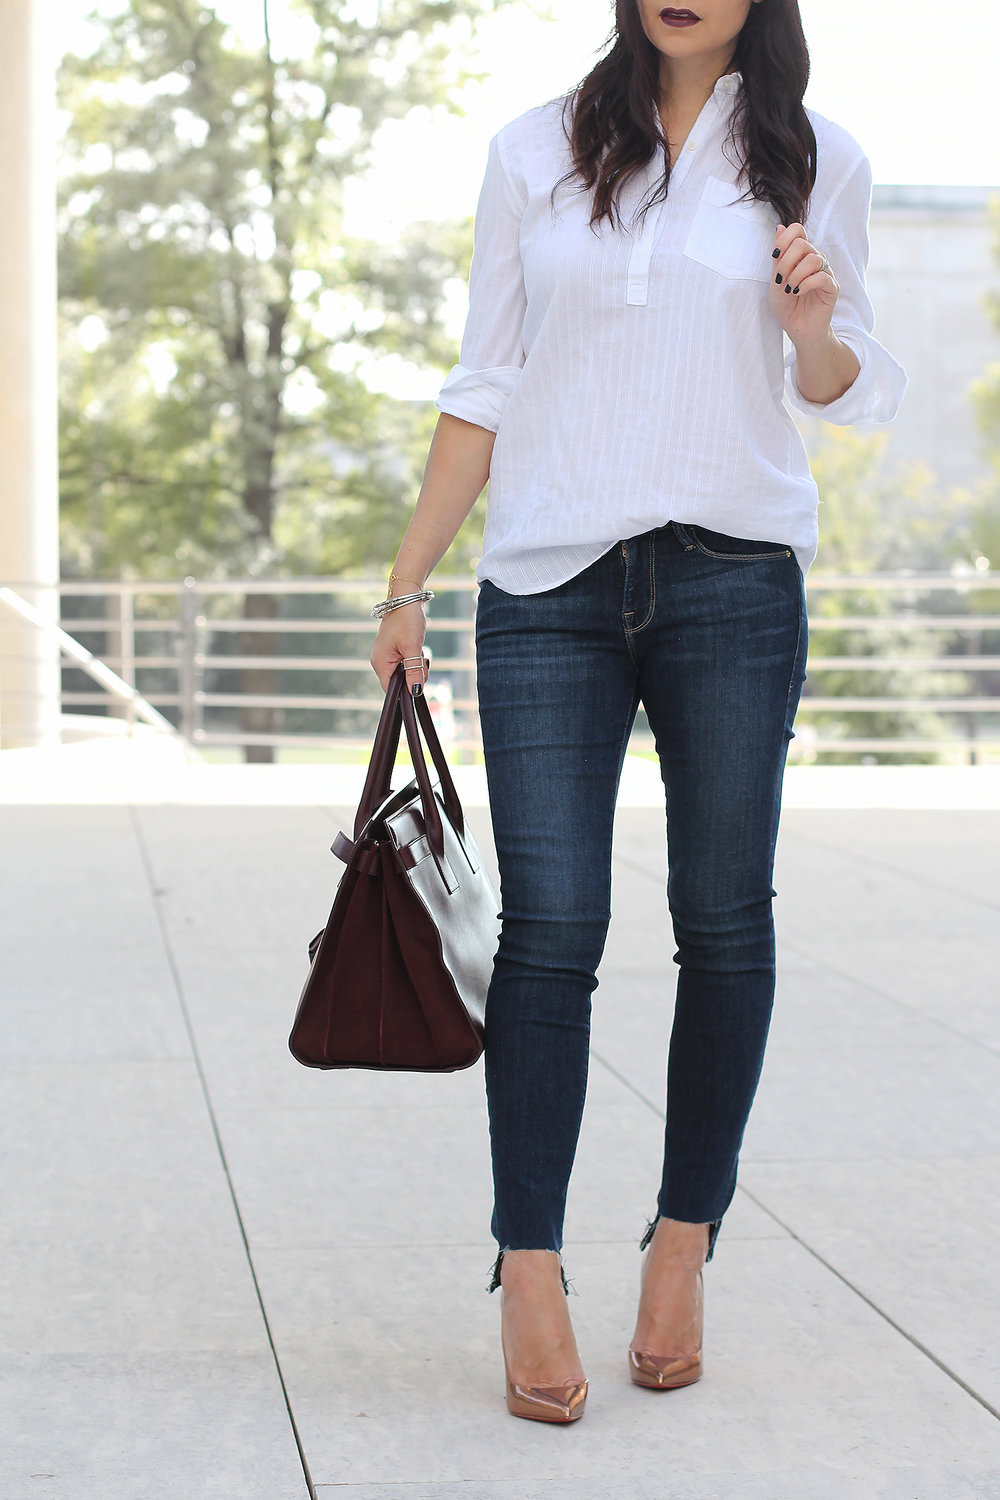 Classic White Button-Down Shirt Style